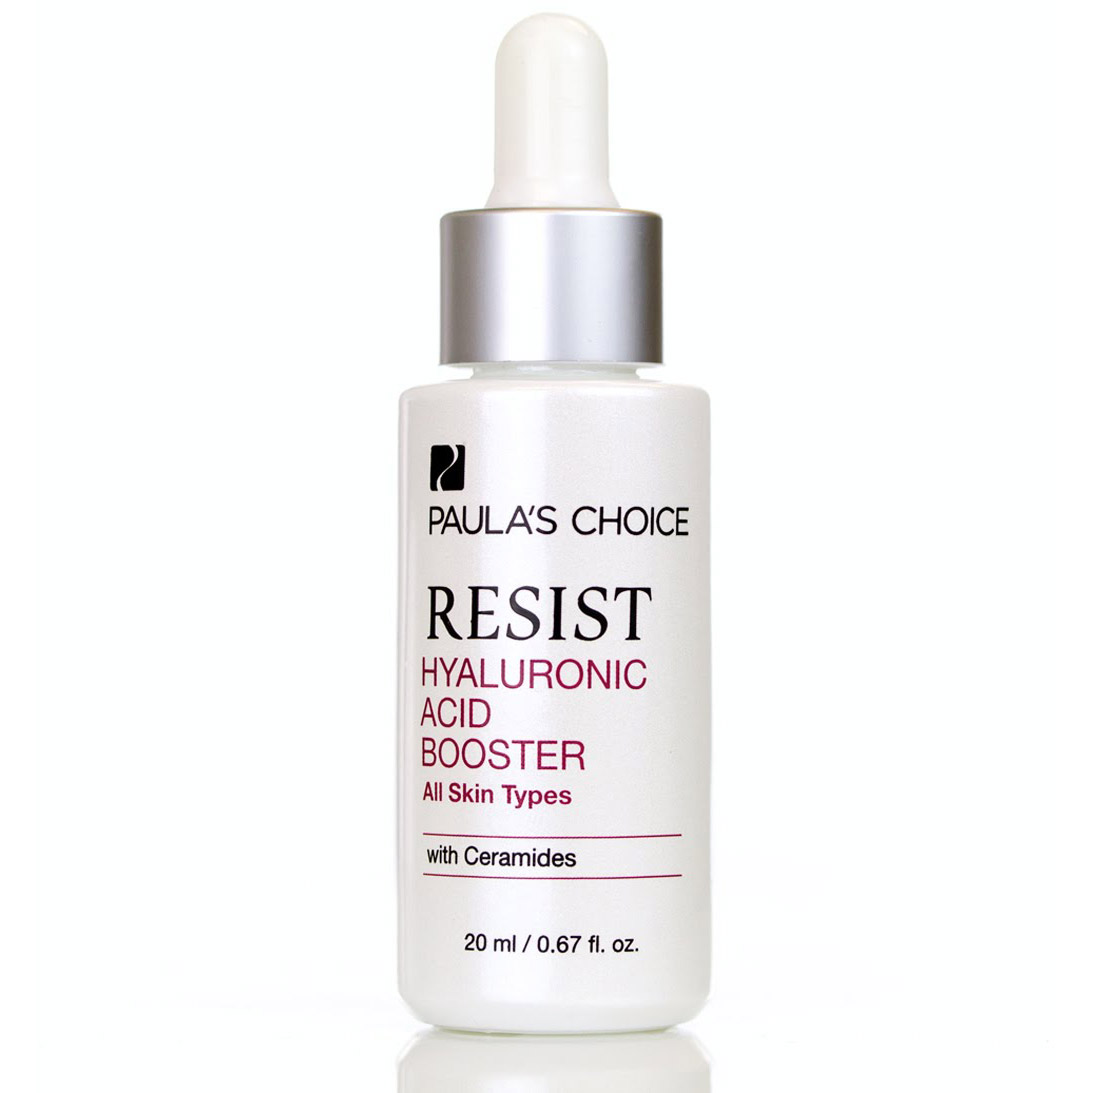 Paula's Choice RESIST Hyaluronic Acid Booster - 20ml